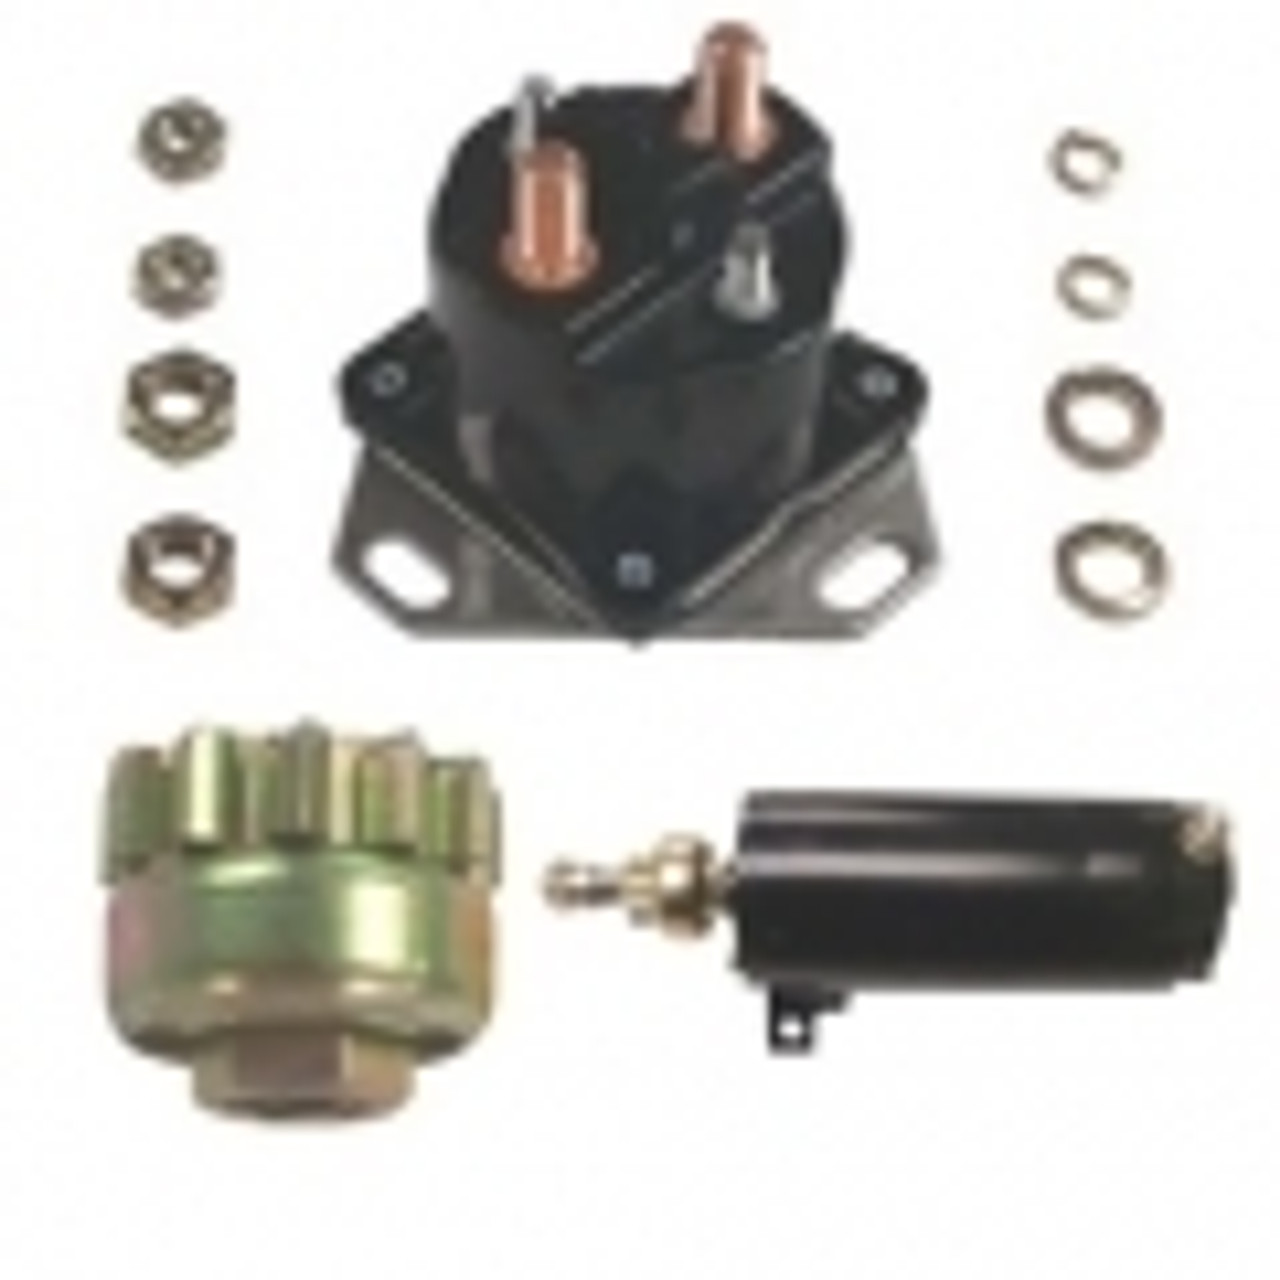 55 nissan outboard wiring harness nissan outboard parts wholesale marine  nissan outboard parts wholesale marine